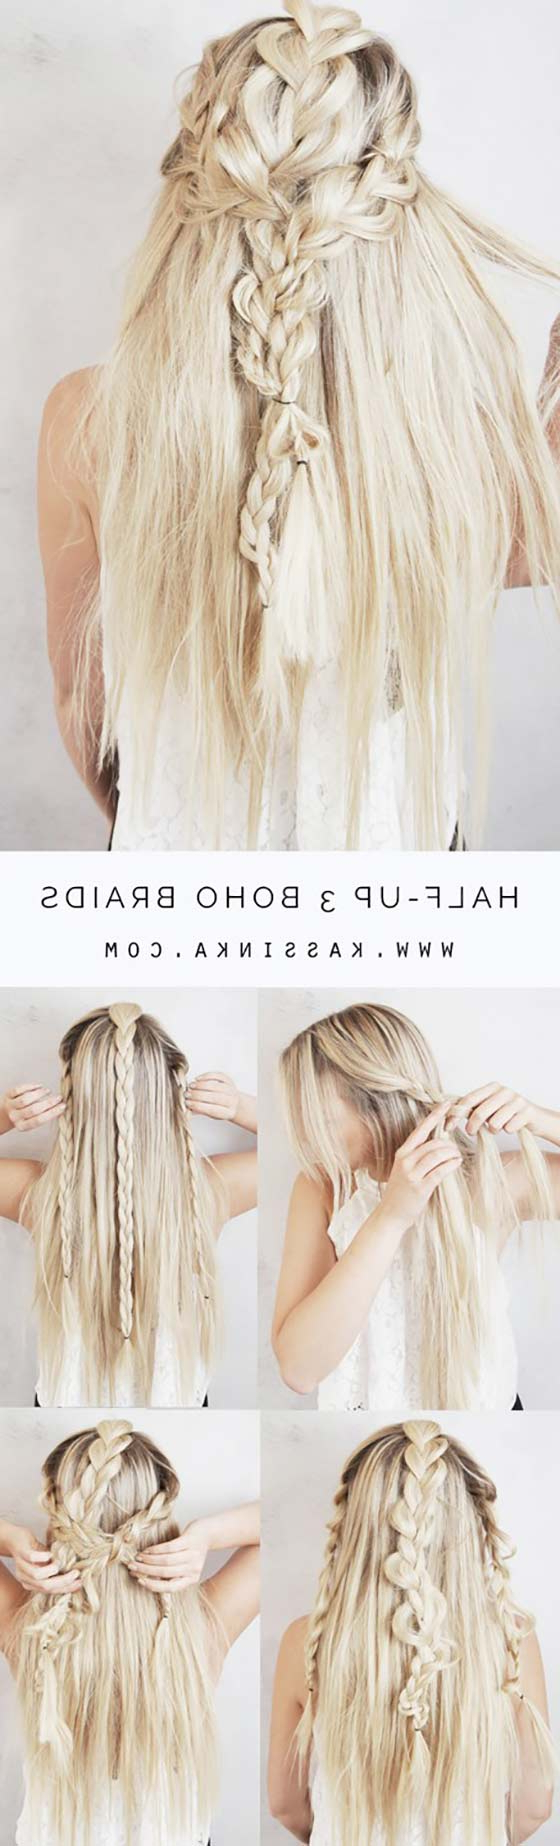 40 Braided Hairstyles For Long Hair In Most Up To Date Boho Half Braid Hairstyles (View 15 of 20)